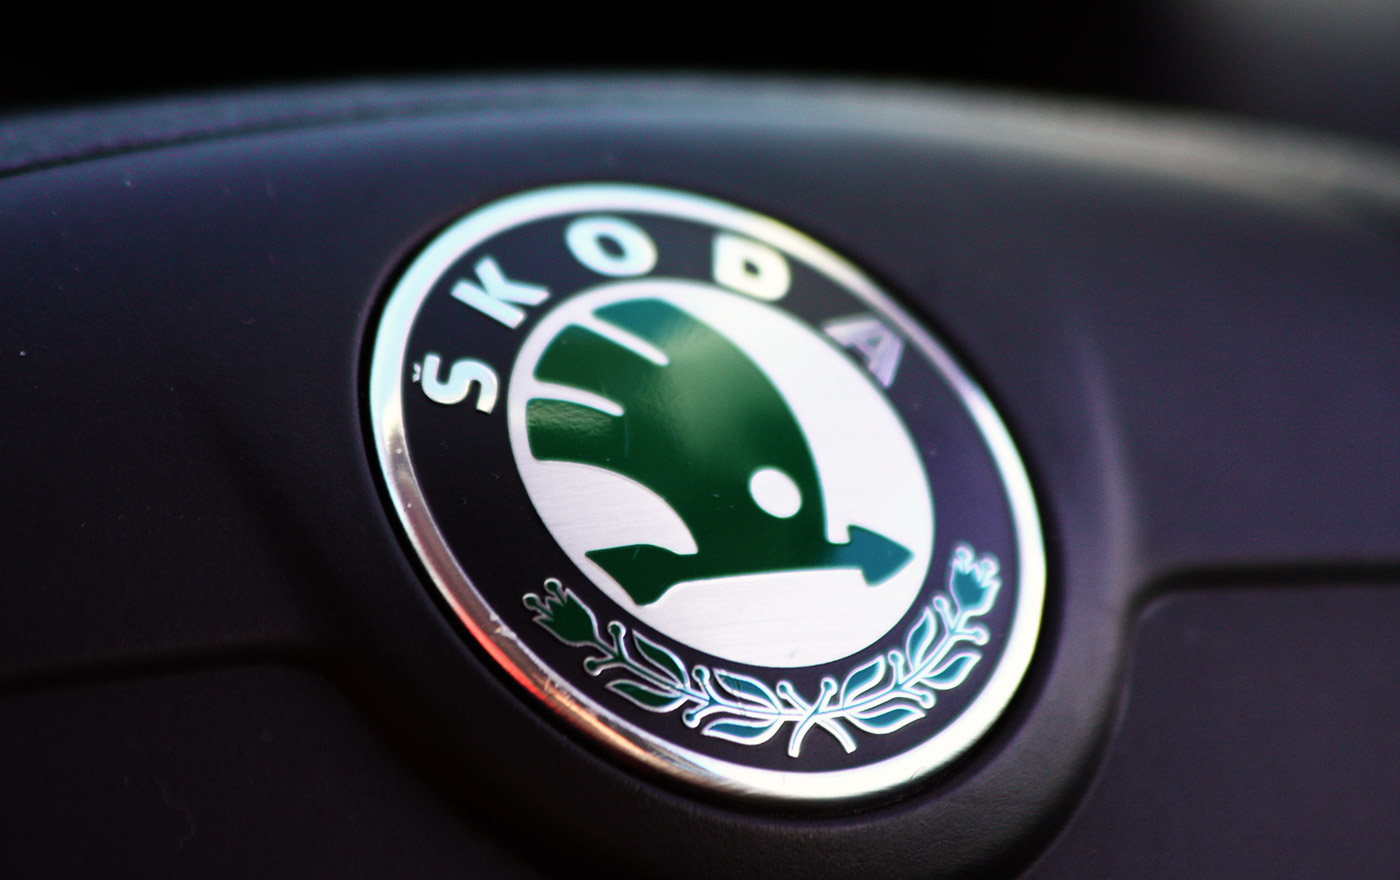 Evolution of the skoda logo